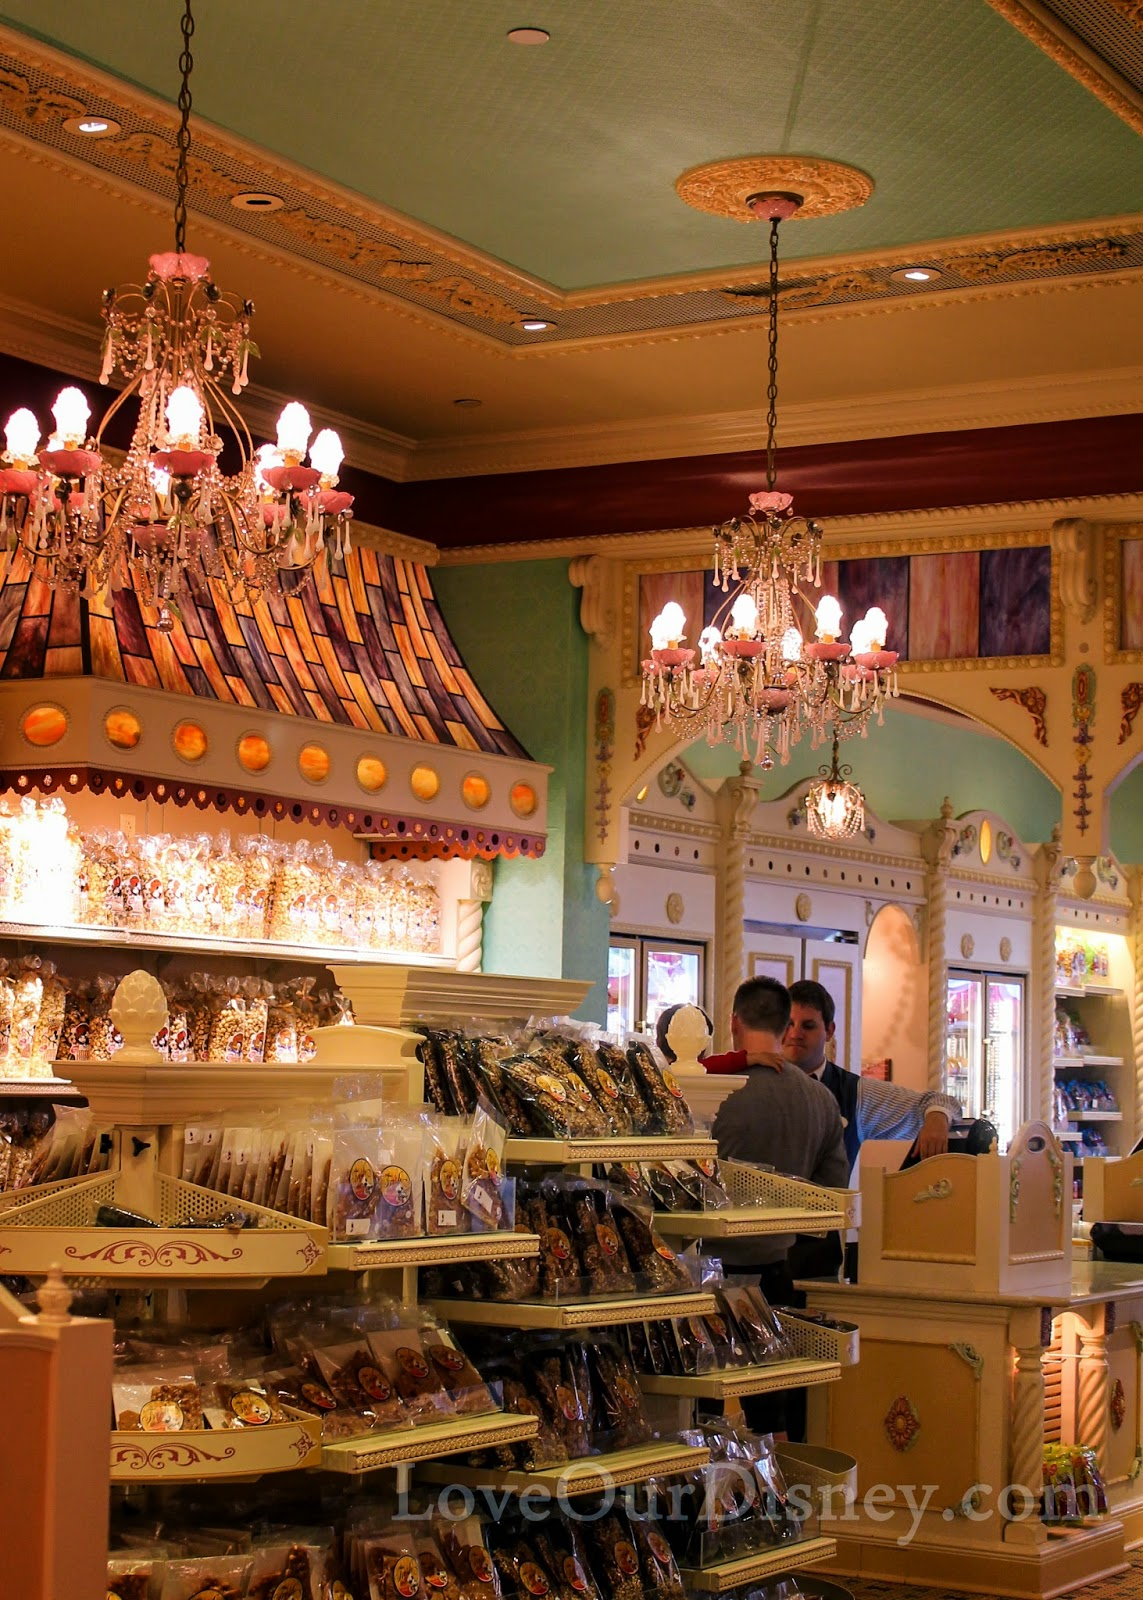 Wouldn't Disneyland's Candy Palace make a great photo session location? LoveOurDisney.com